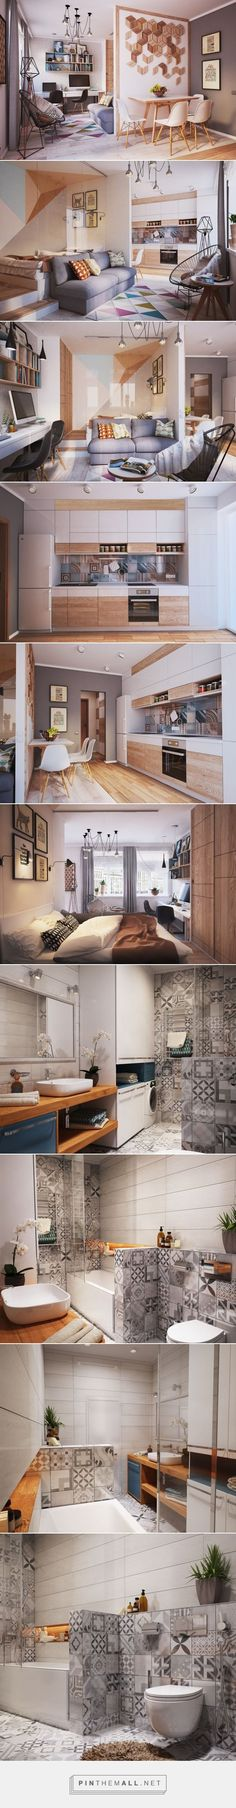 Minimalist Apartment Decor – Modern & Luxury Ideas - Living Small With Style